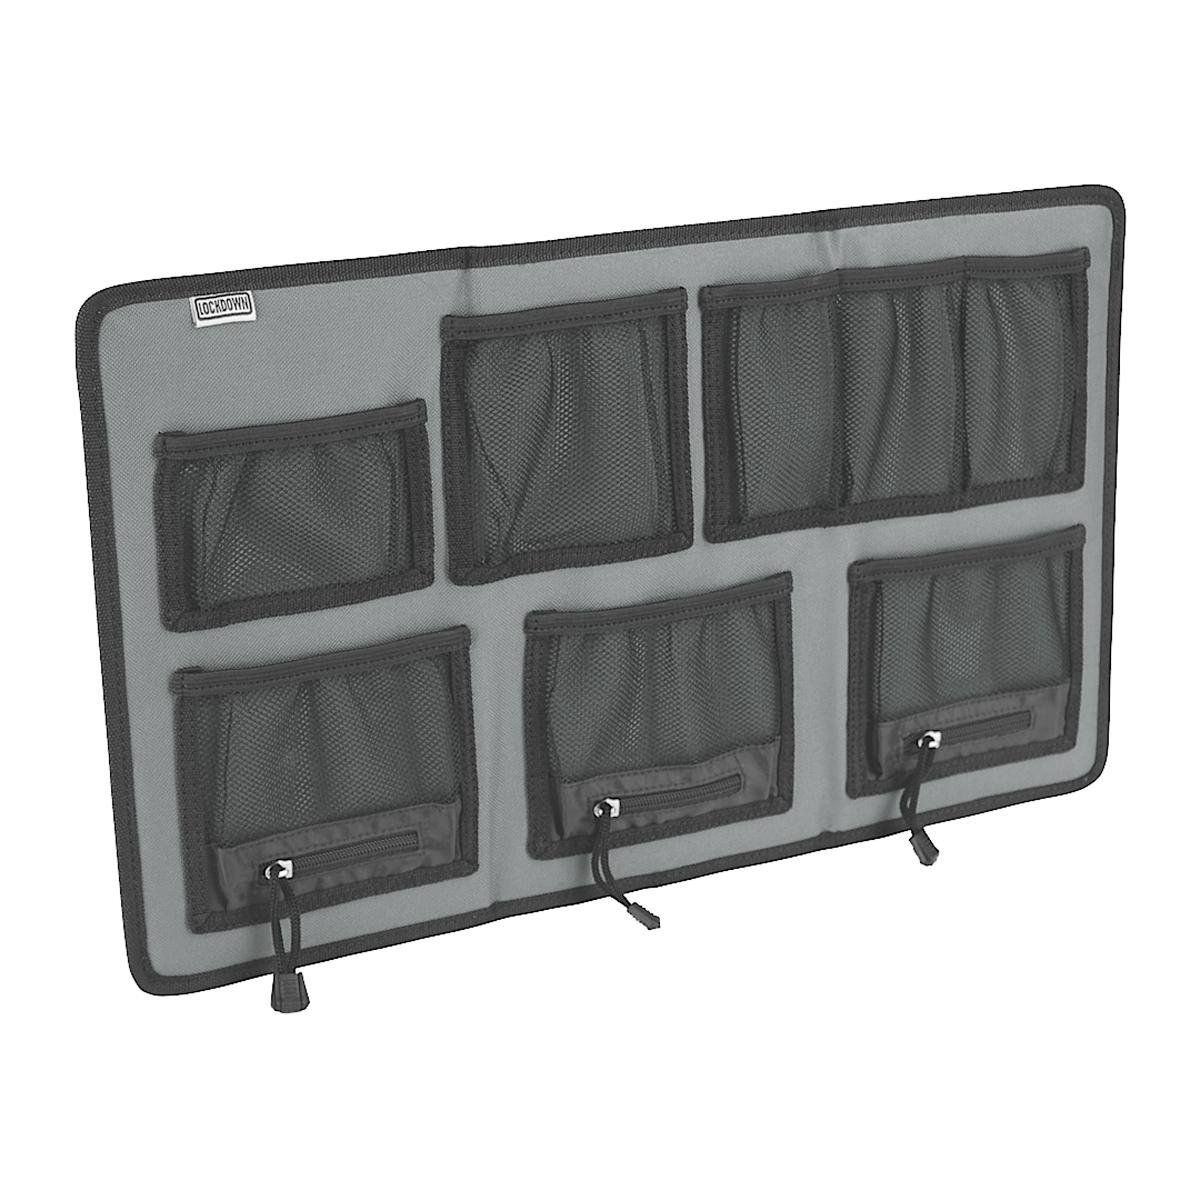 Amazon.com: Lockdown Large Hanging Vault Organizer: Sports & Outdoors